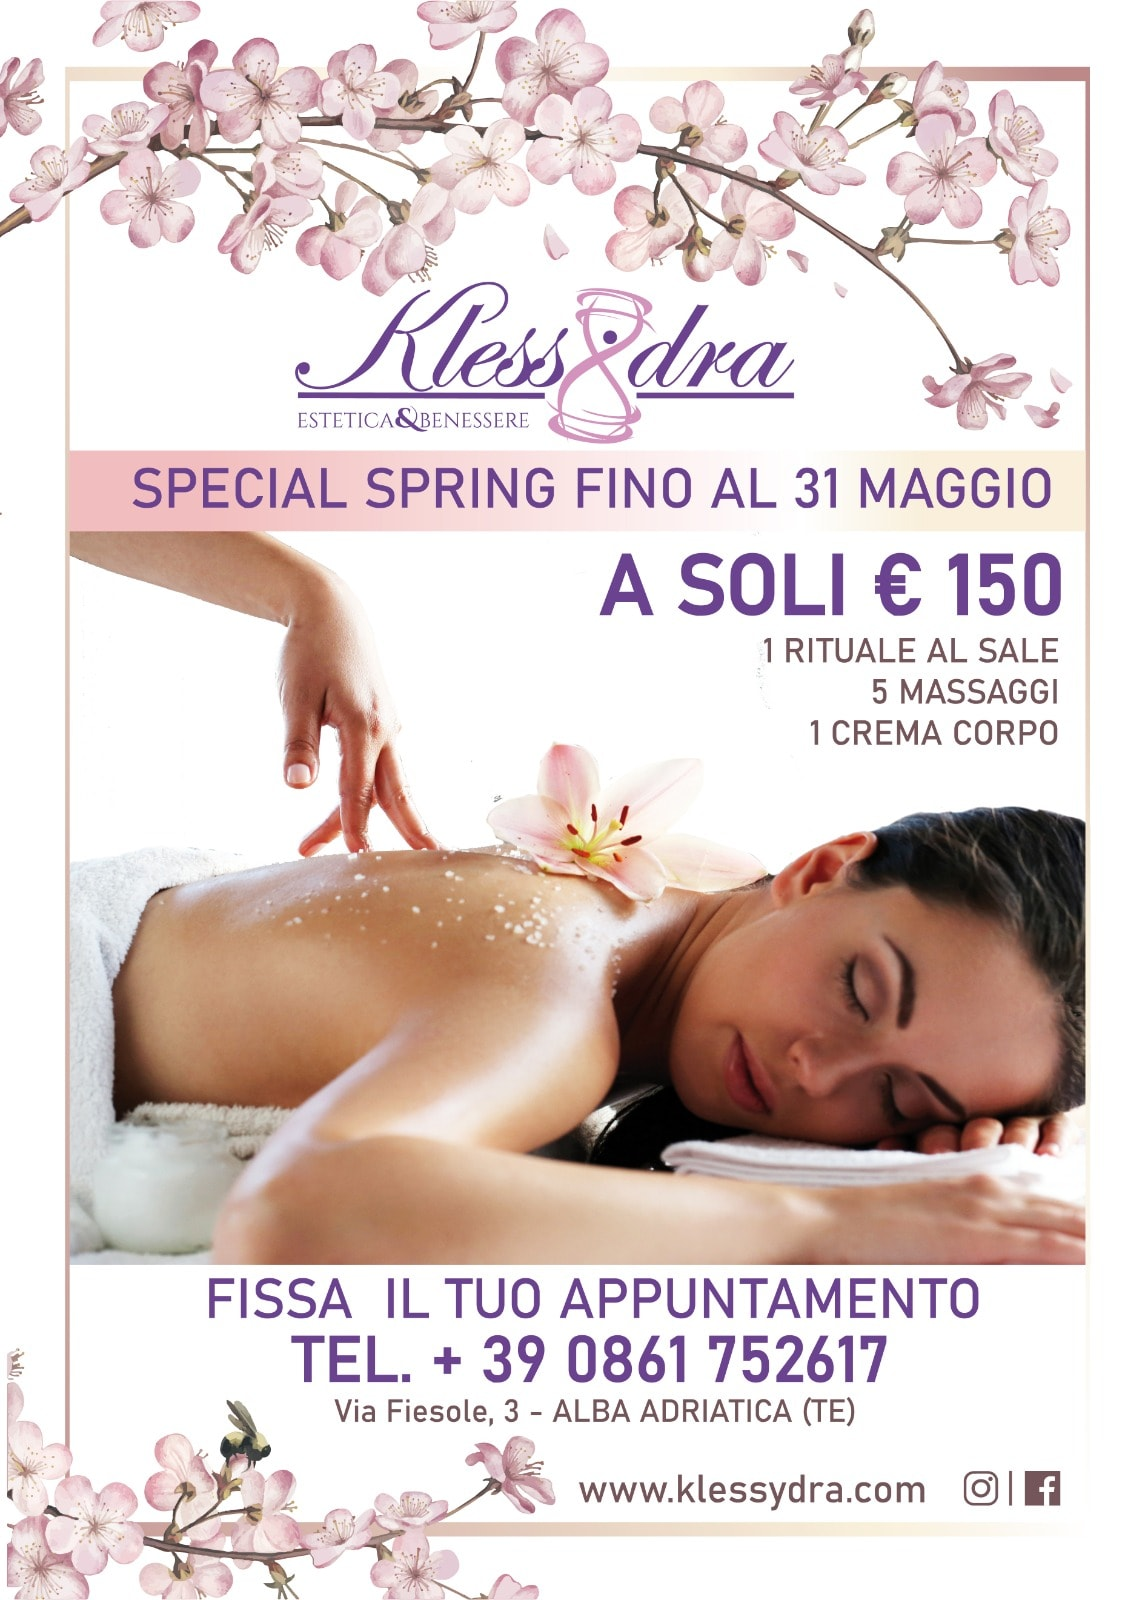 Centro Benessere Klessydra: SPECIAL SPRING